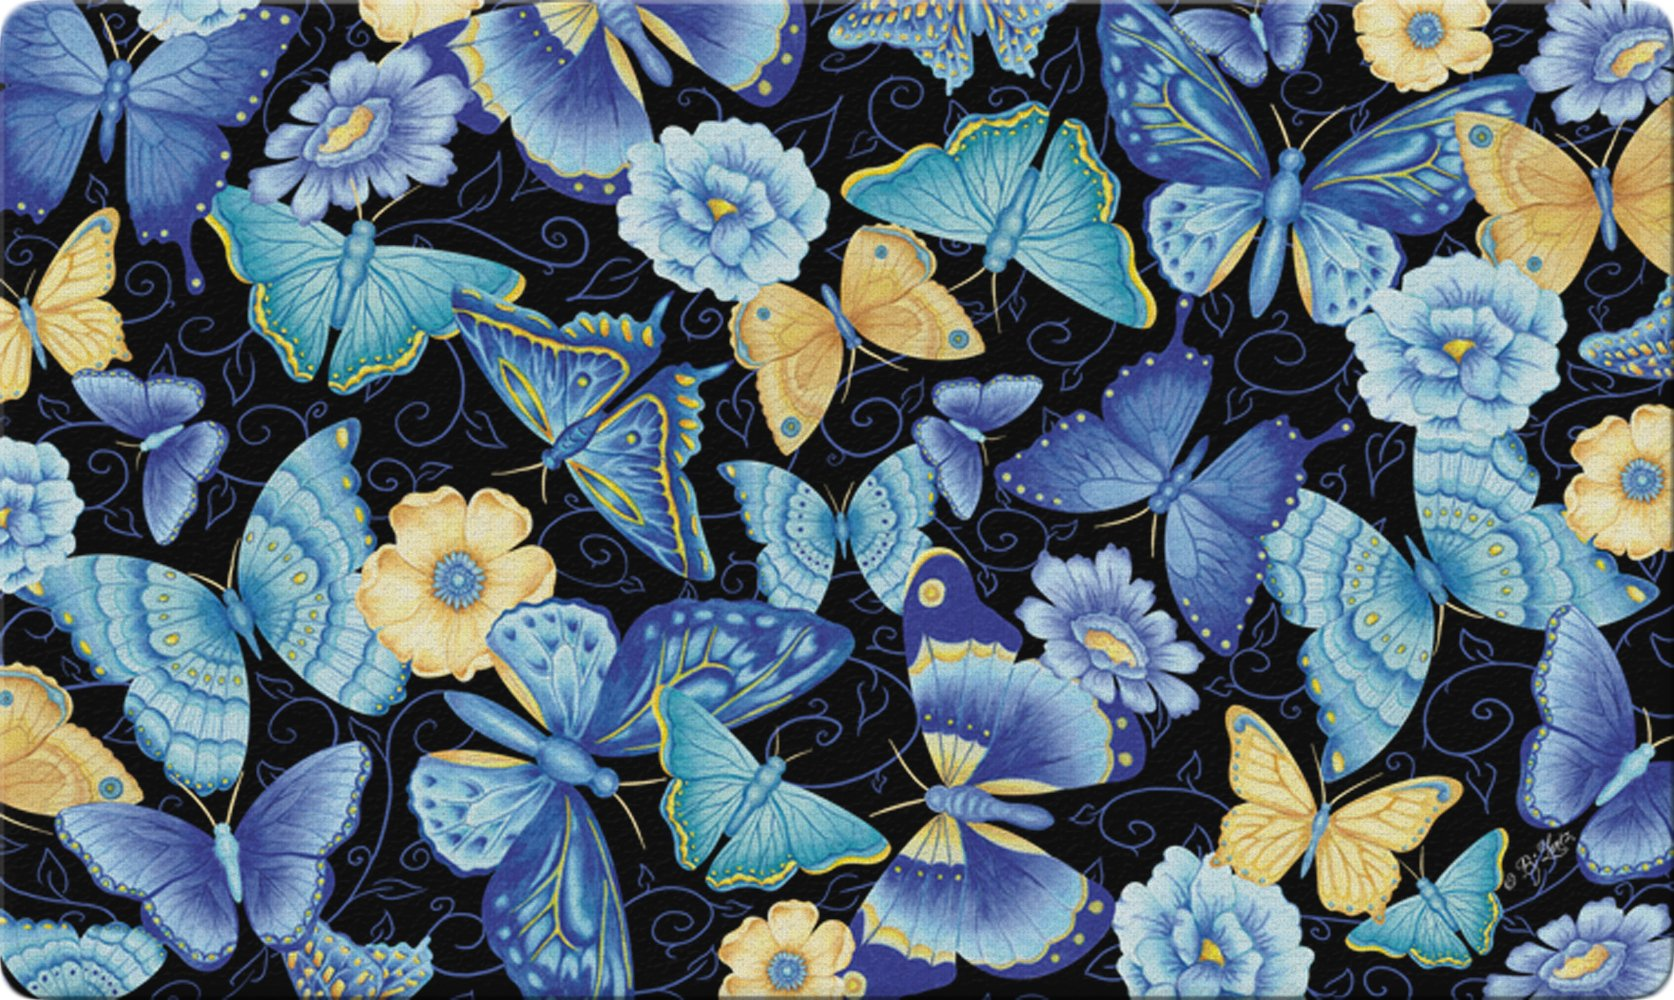 Toland Home Garden Butterfly 18 x 30 Inch Decorative Floor Mat Colorful Flower Monarch Collage Doormat